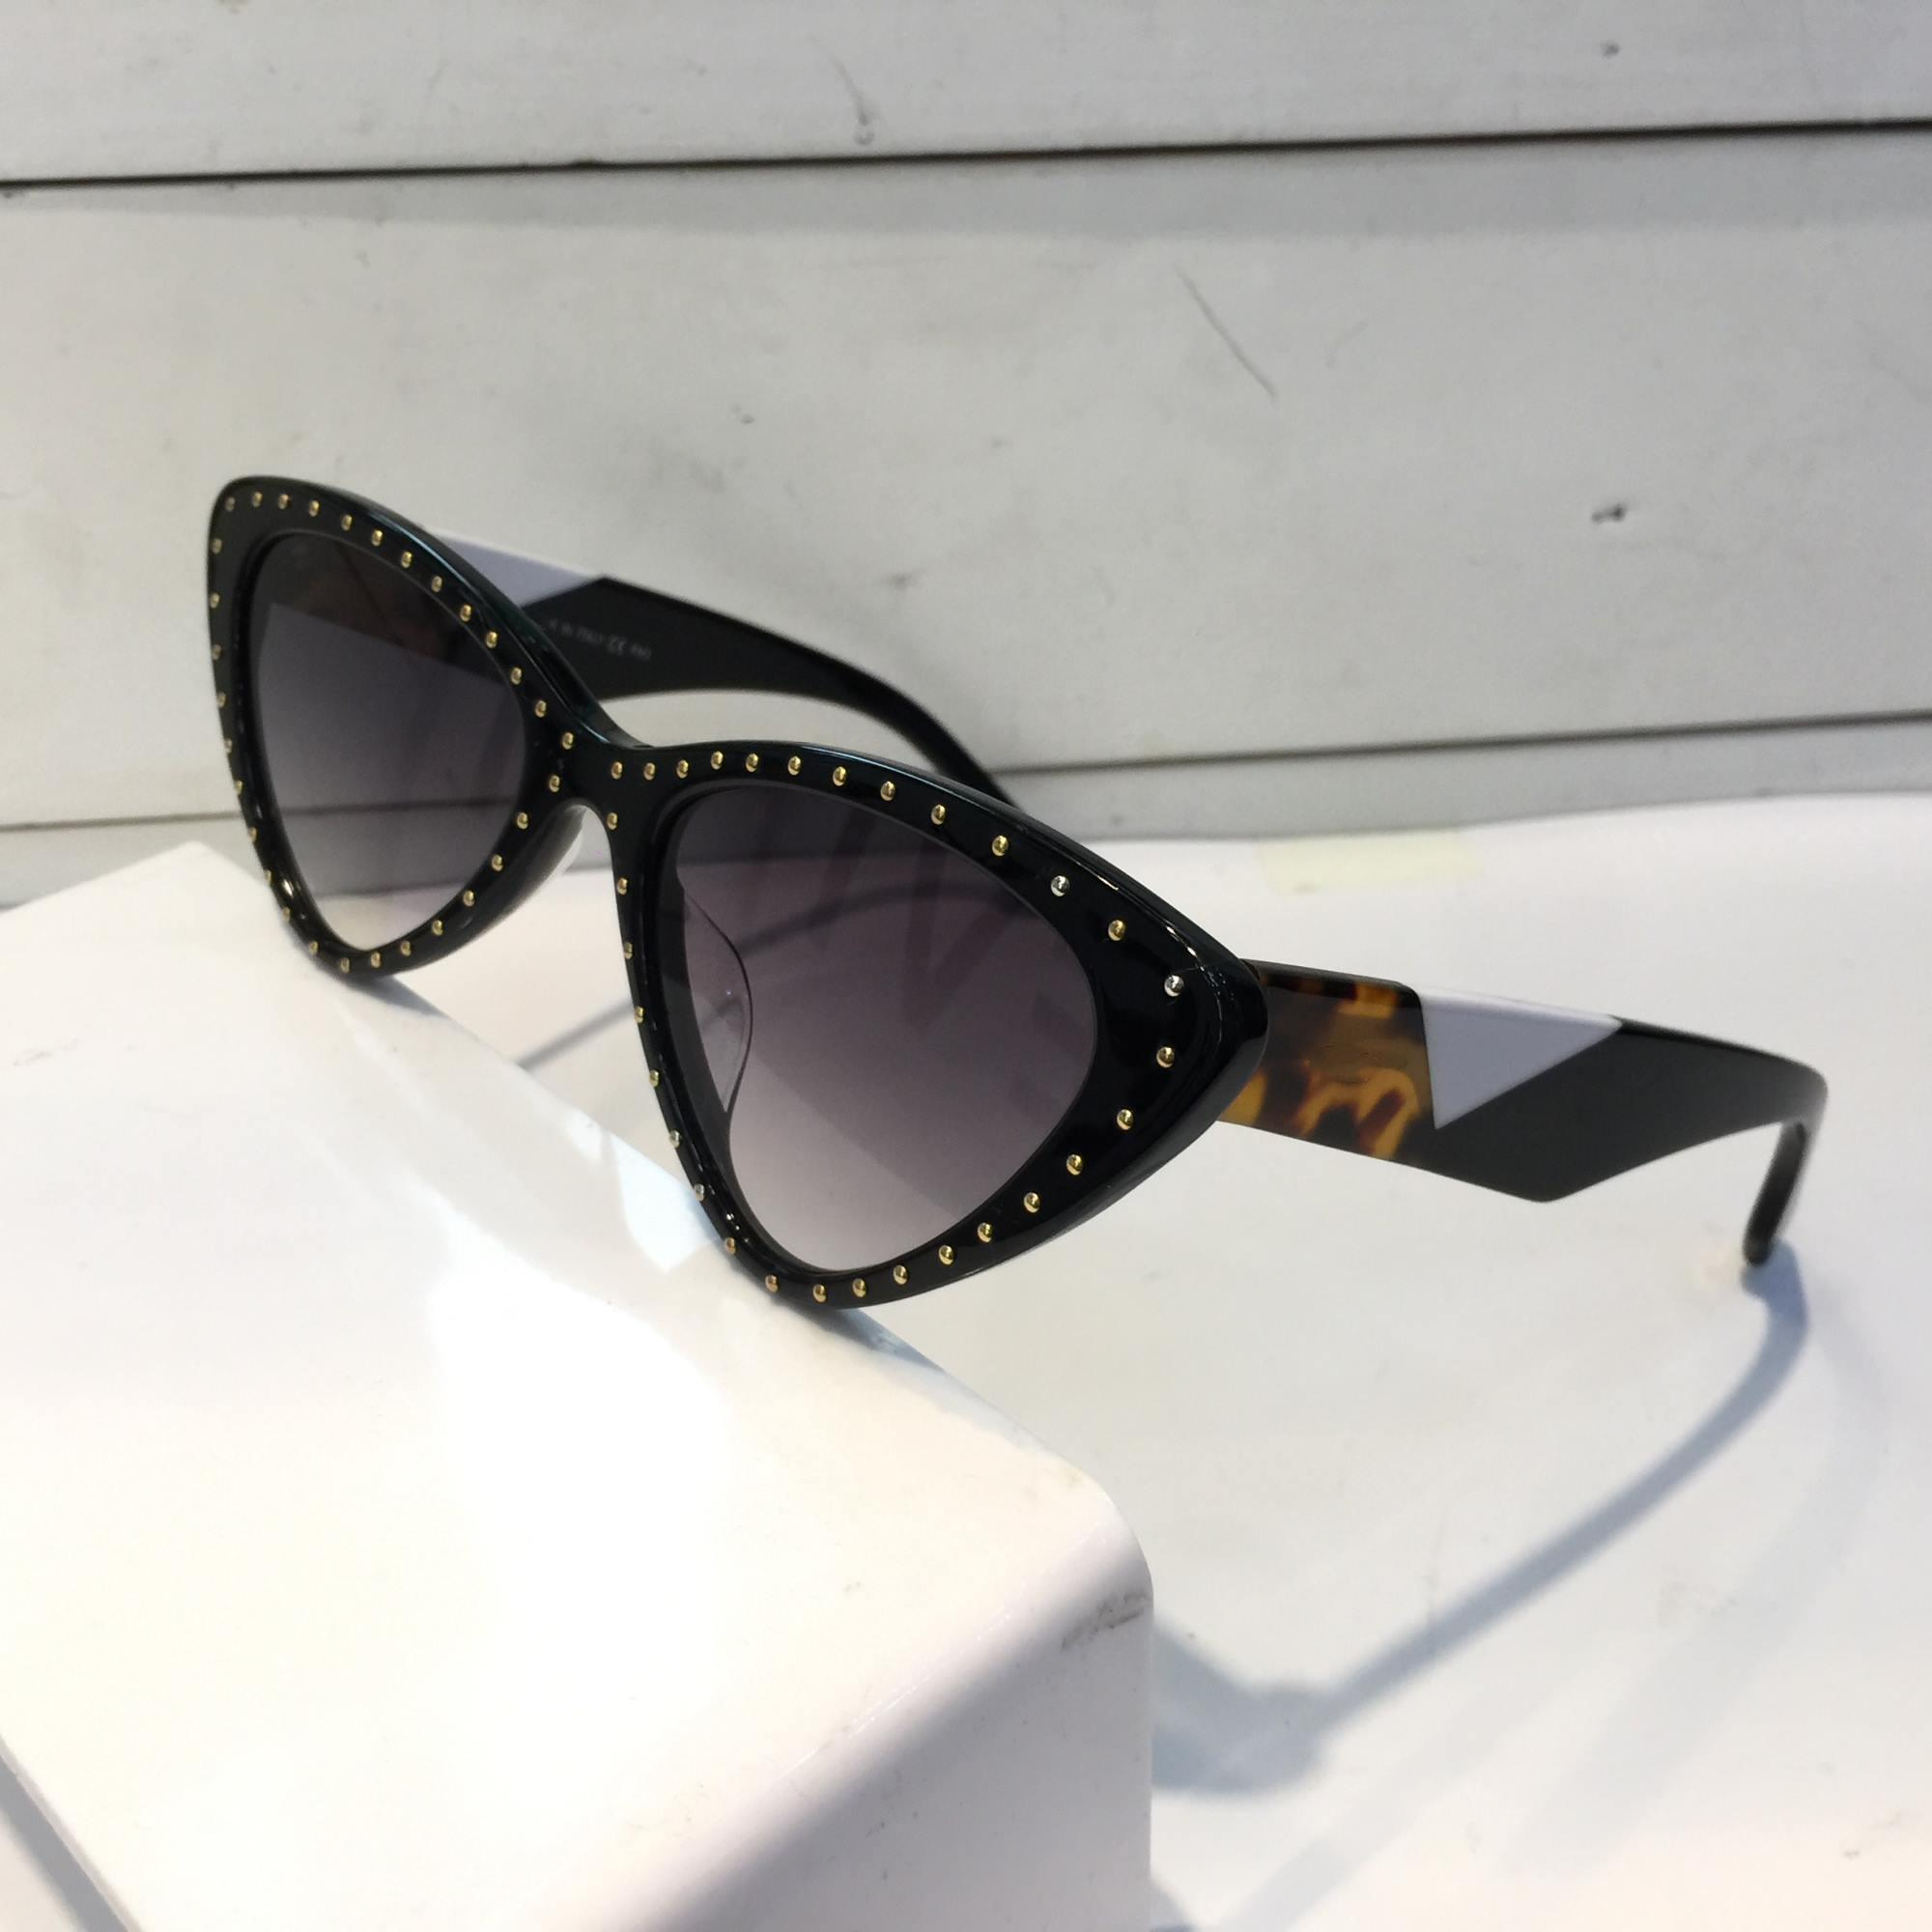 Luxury- 0323 Sunglasses For Women Fashion Design Popular Charming Cat Eye Sunglasses Top Quality UV Protection Sunglasses Come With Package